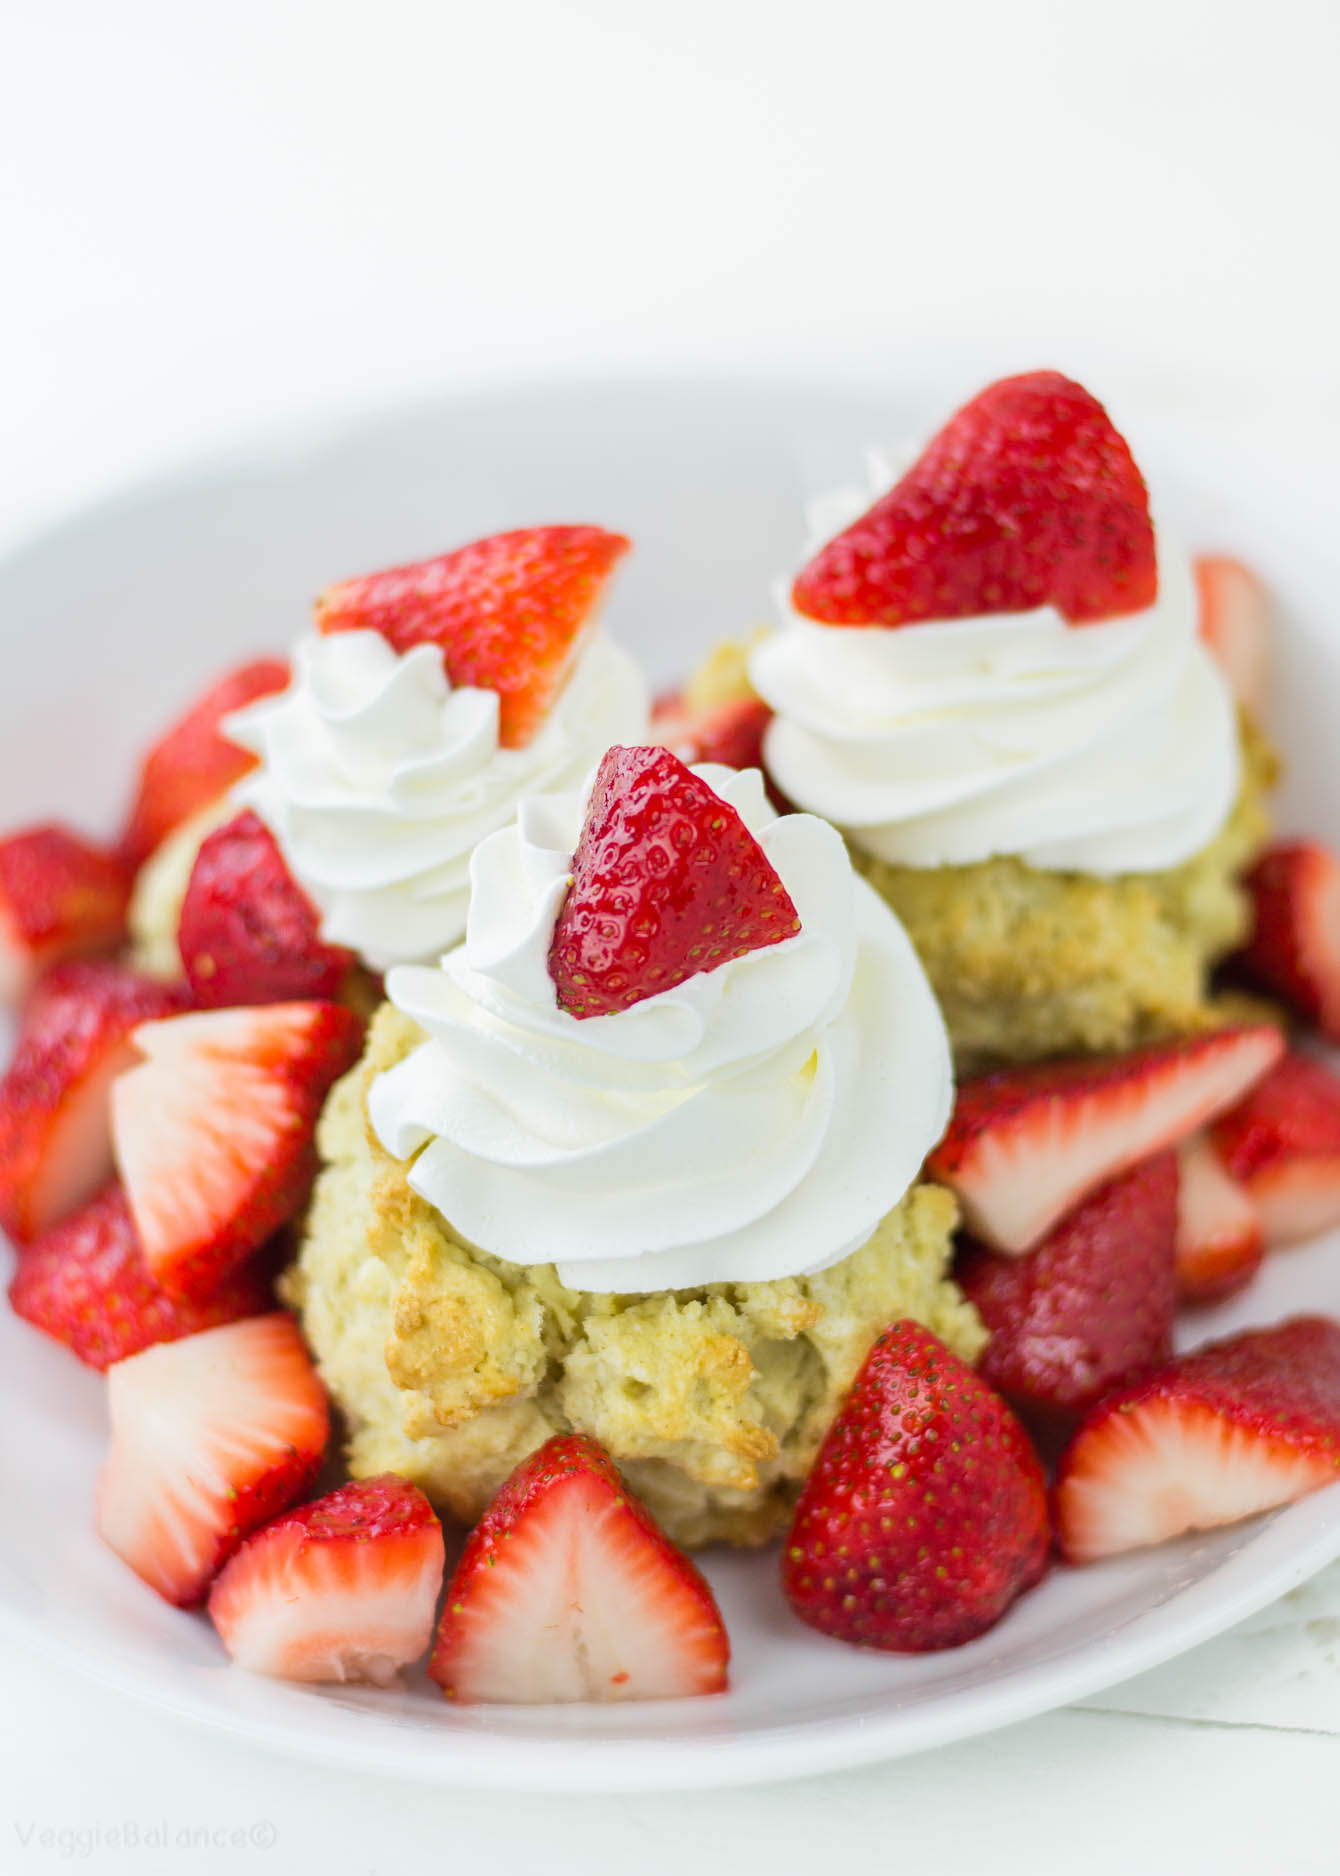 Gluten Free Strawberry Shortcake recipe Gluten Free - veggiebalance.com